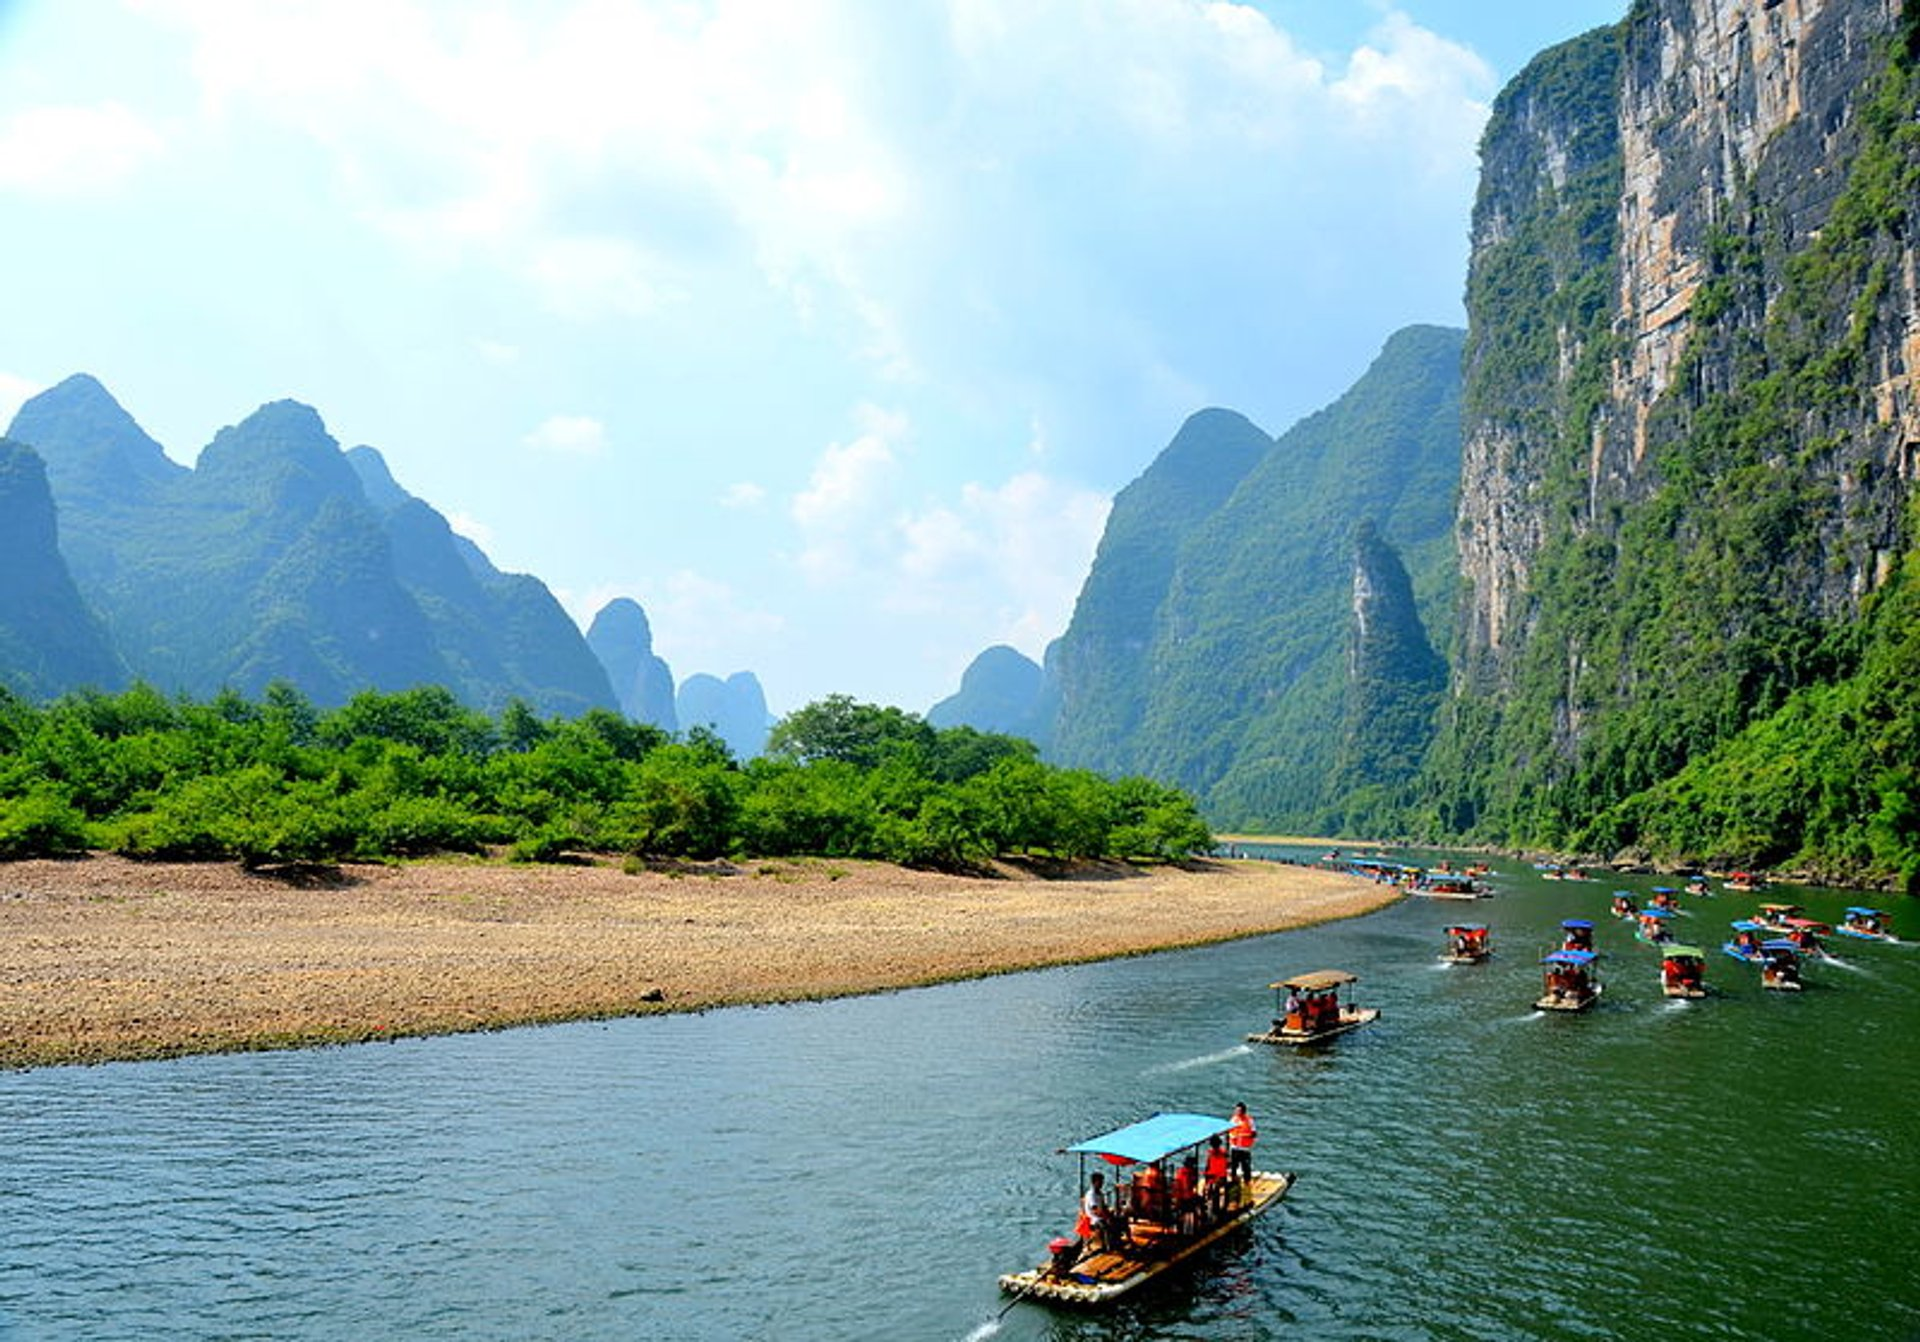 Li River Hiking in Guilin 2020 - Best Time